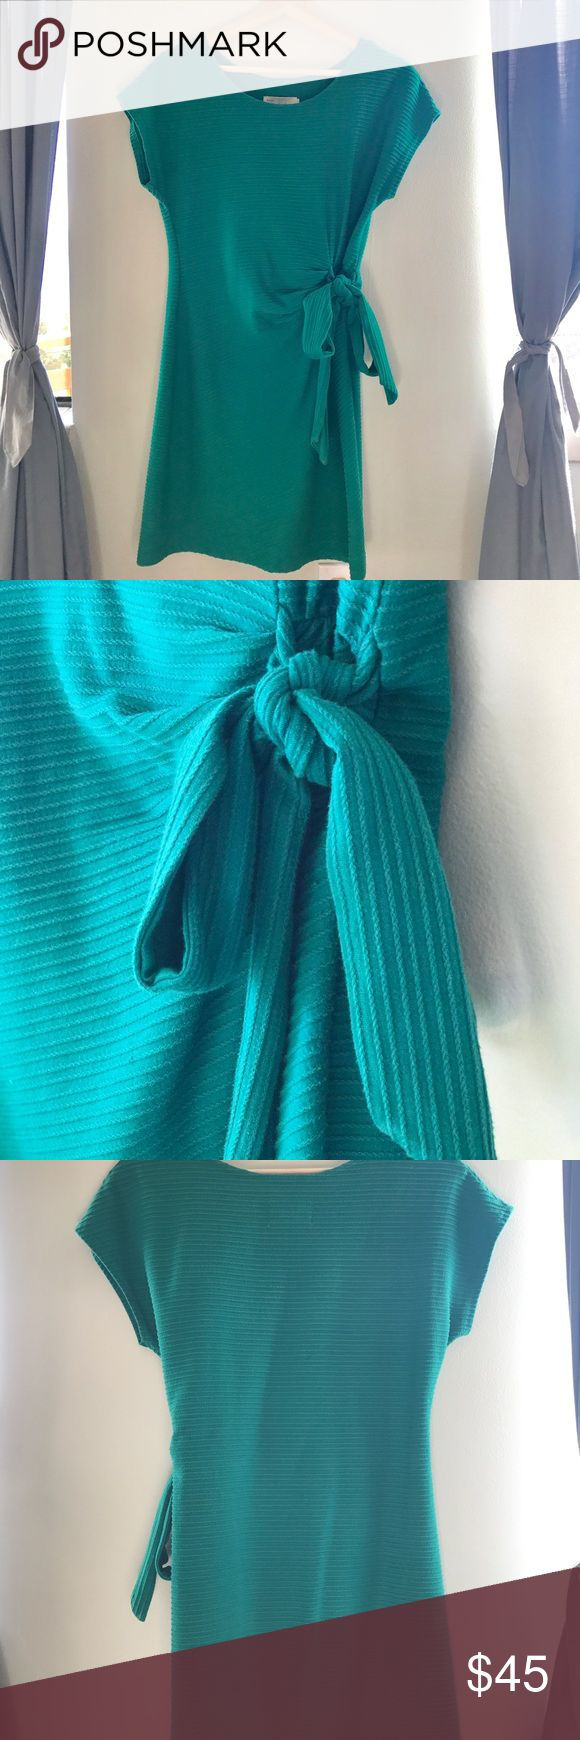 Anthropologie Saturday Sunday Dress Emerald green dress by Saturday Sunday. The tie ok the side gives it a little more shape, which is nice. The material is slightly thicker cotton so I have worn this often in the summer and winter. Anthropologie Dresses Mini